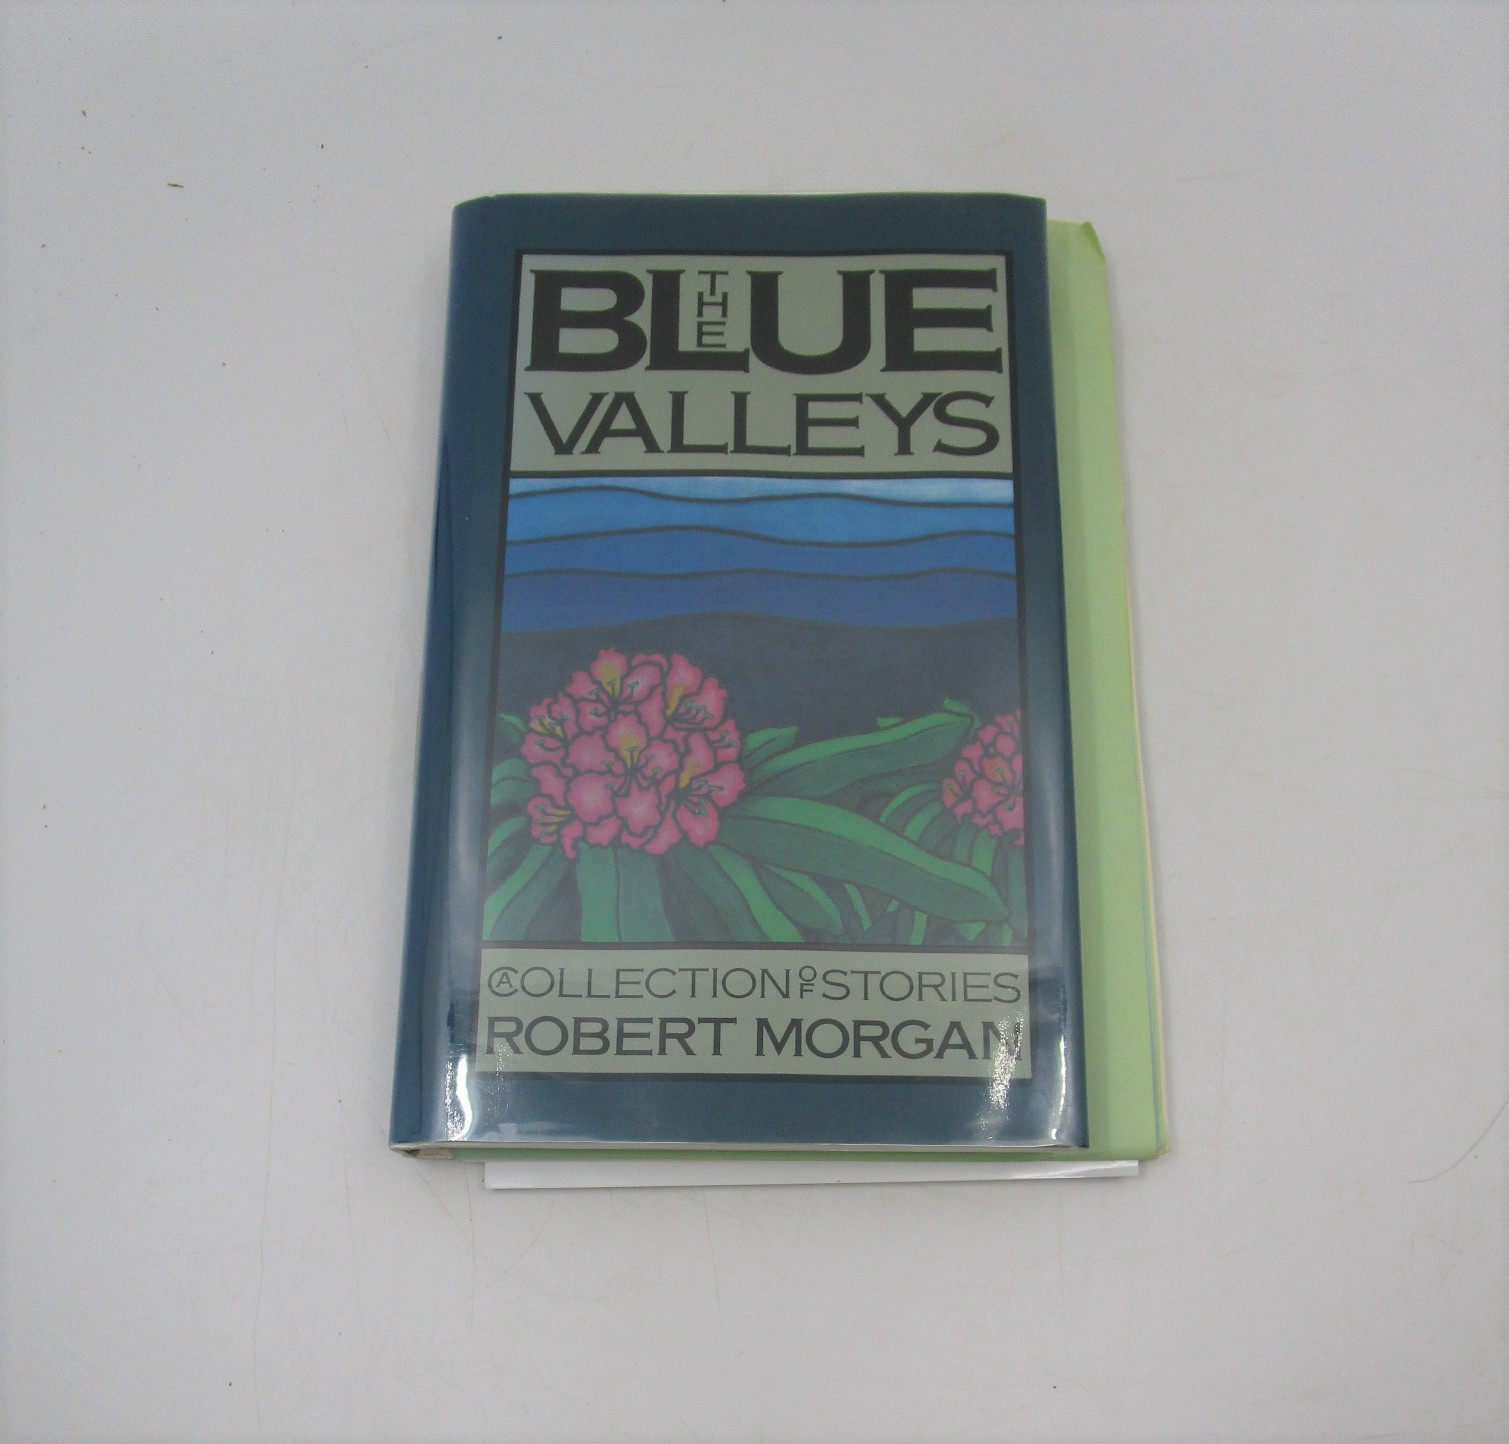 Image for The Blue Valleys: A Collection of Stories (Signed)